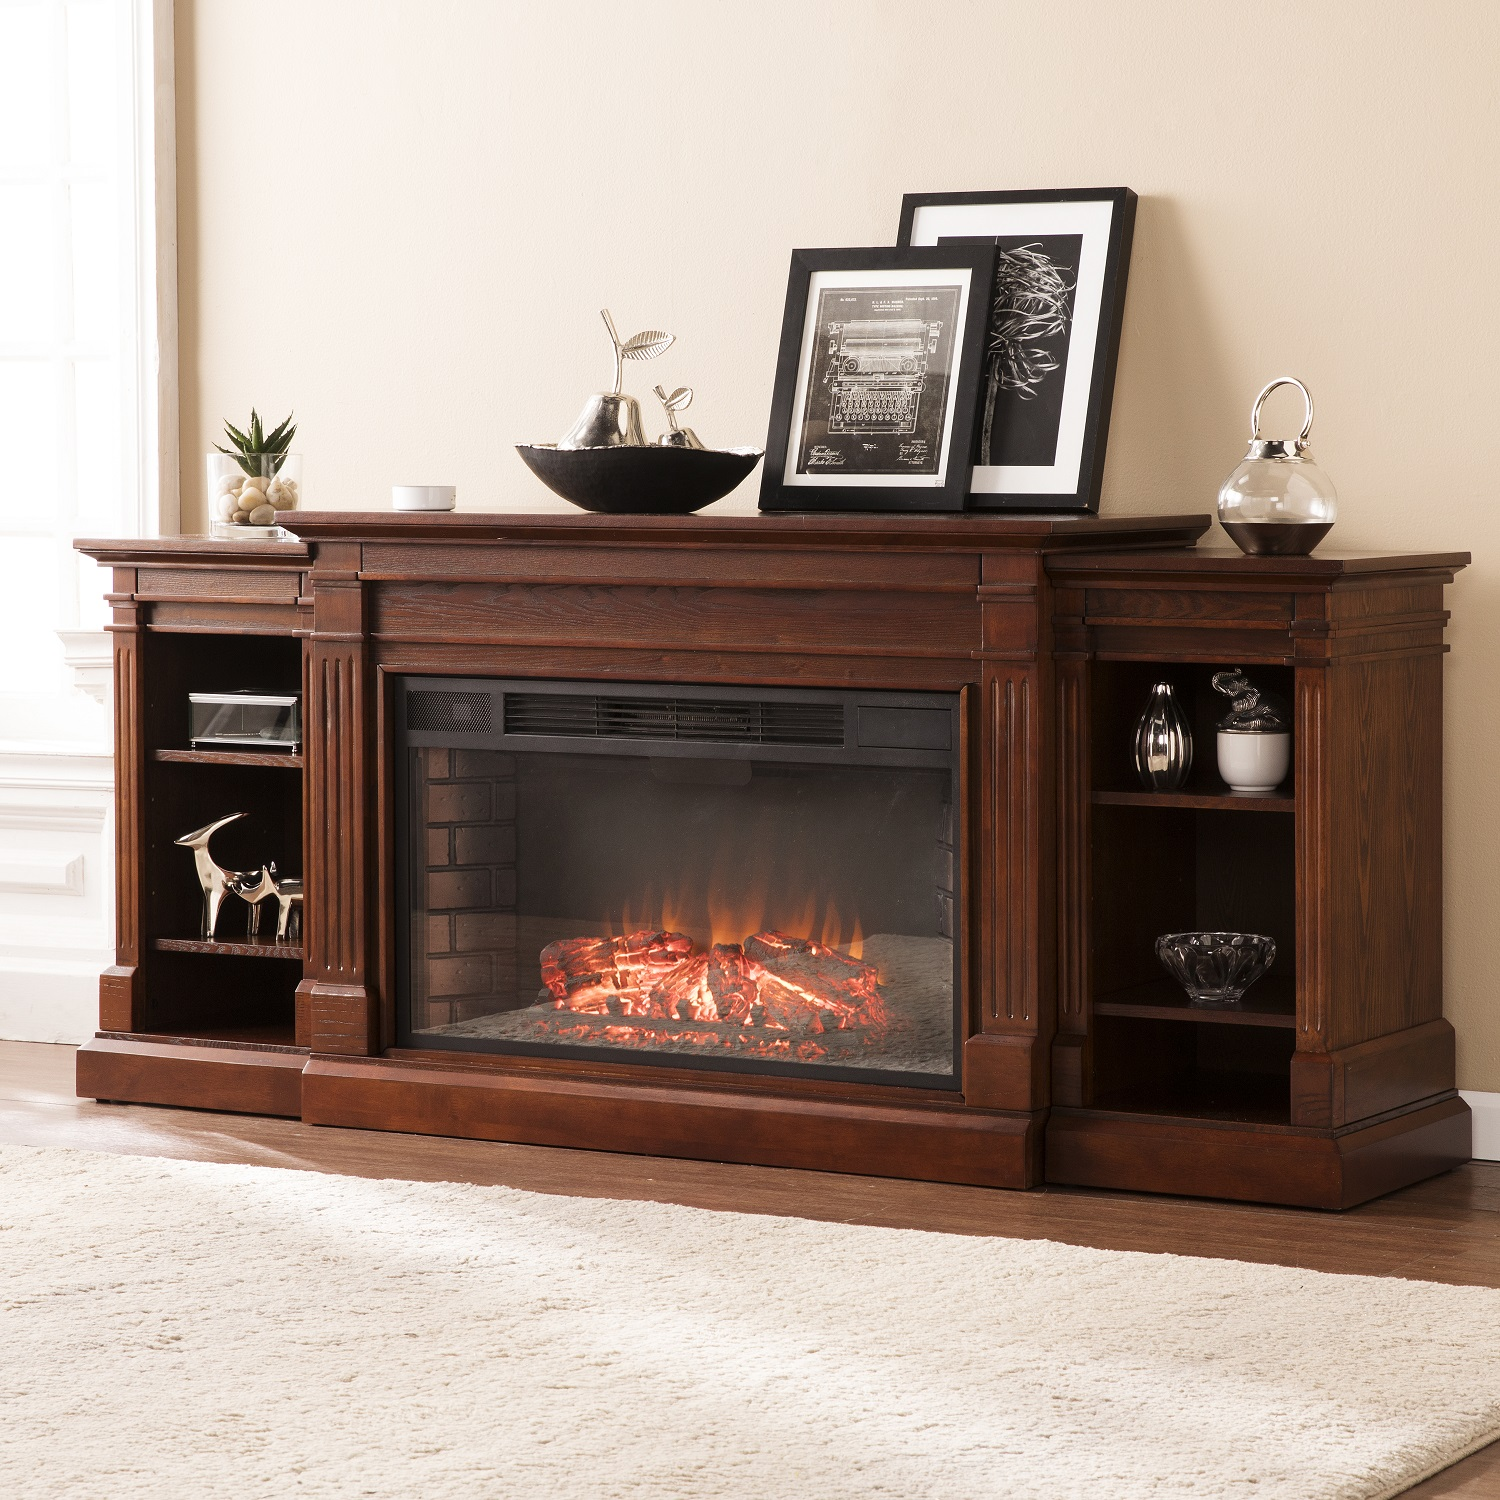 "72"" Reese Widescreen Electric Fireplace w/ Bookcases - Espresso - FE9041"